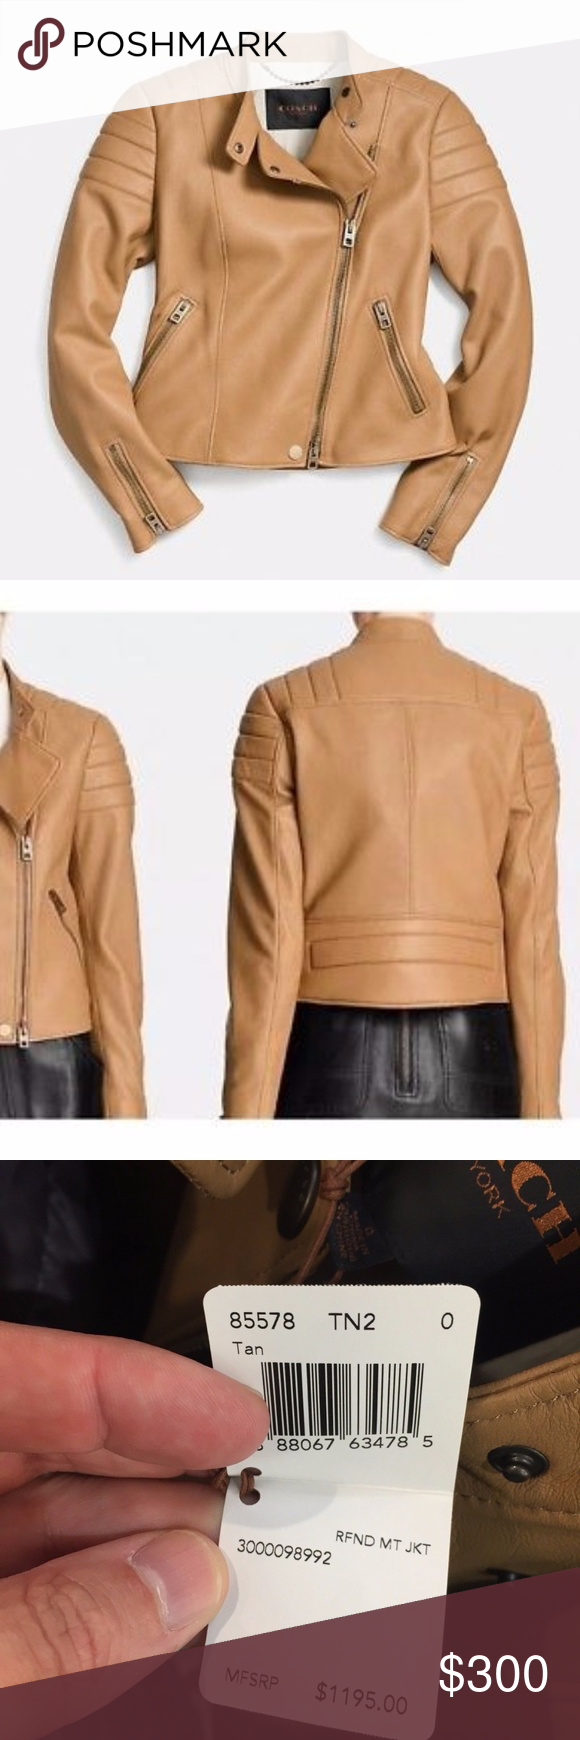 NEW COACH Refined Moto Leather Jacket 0 New Women's Coach